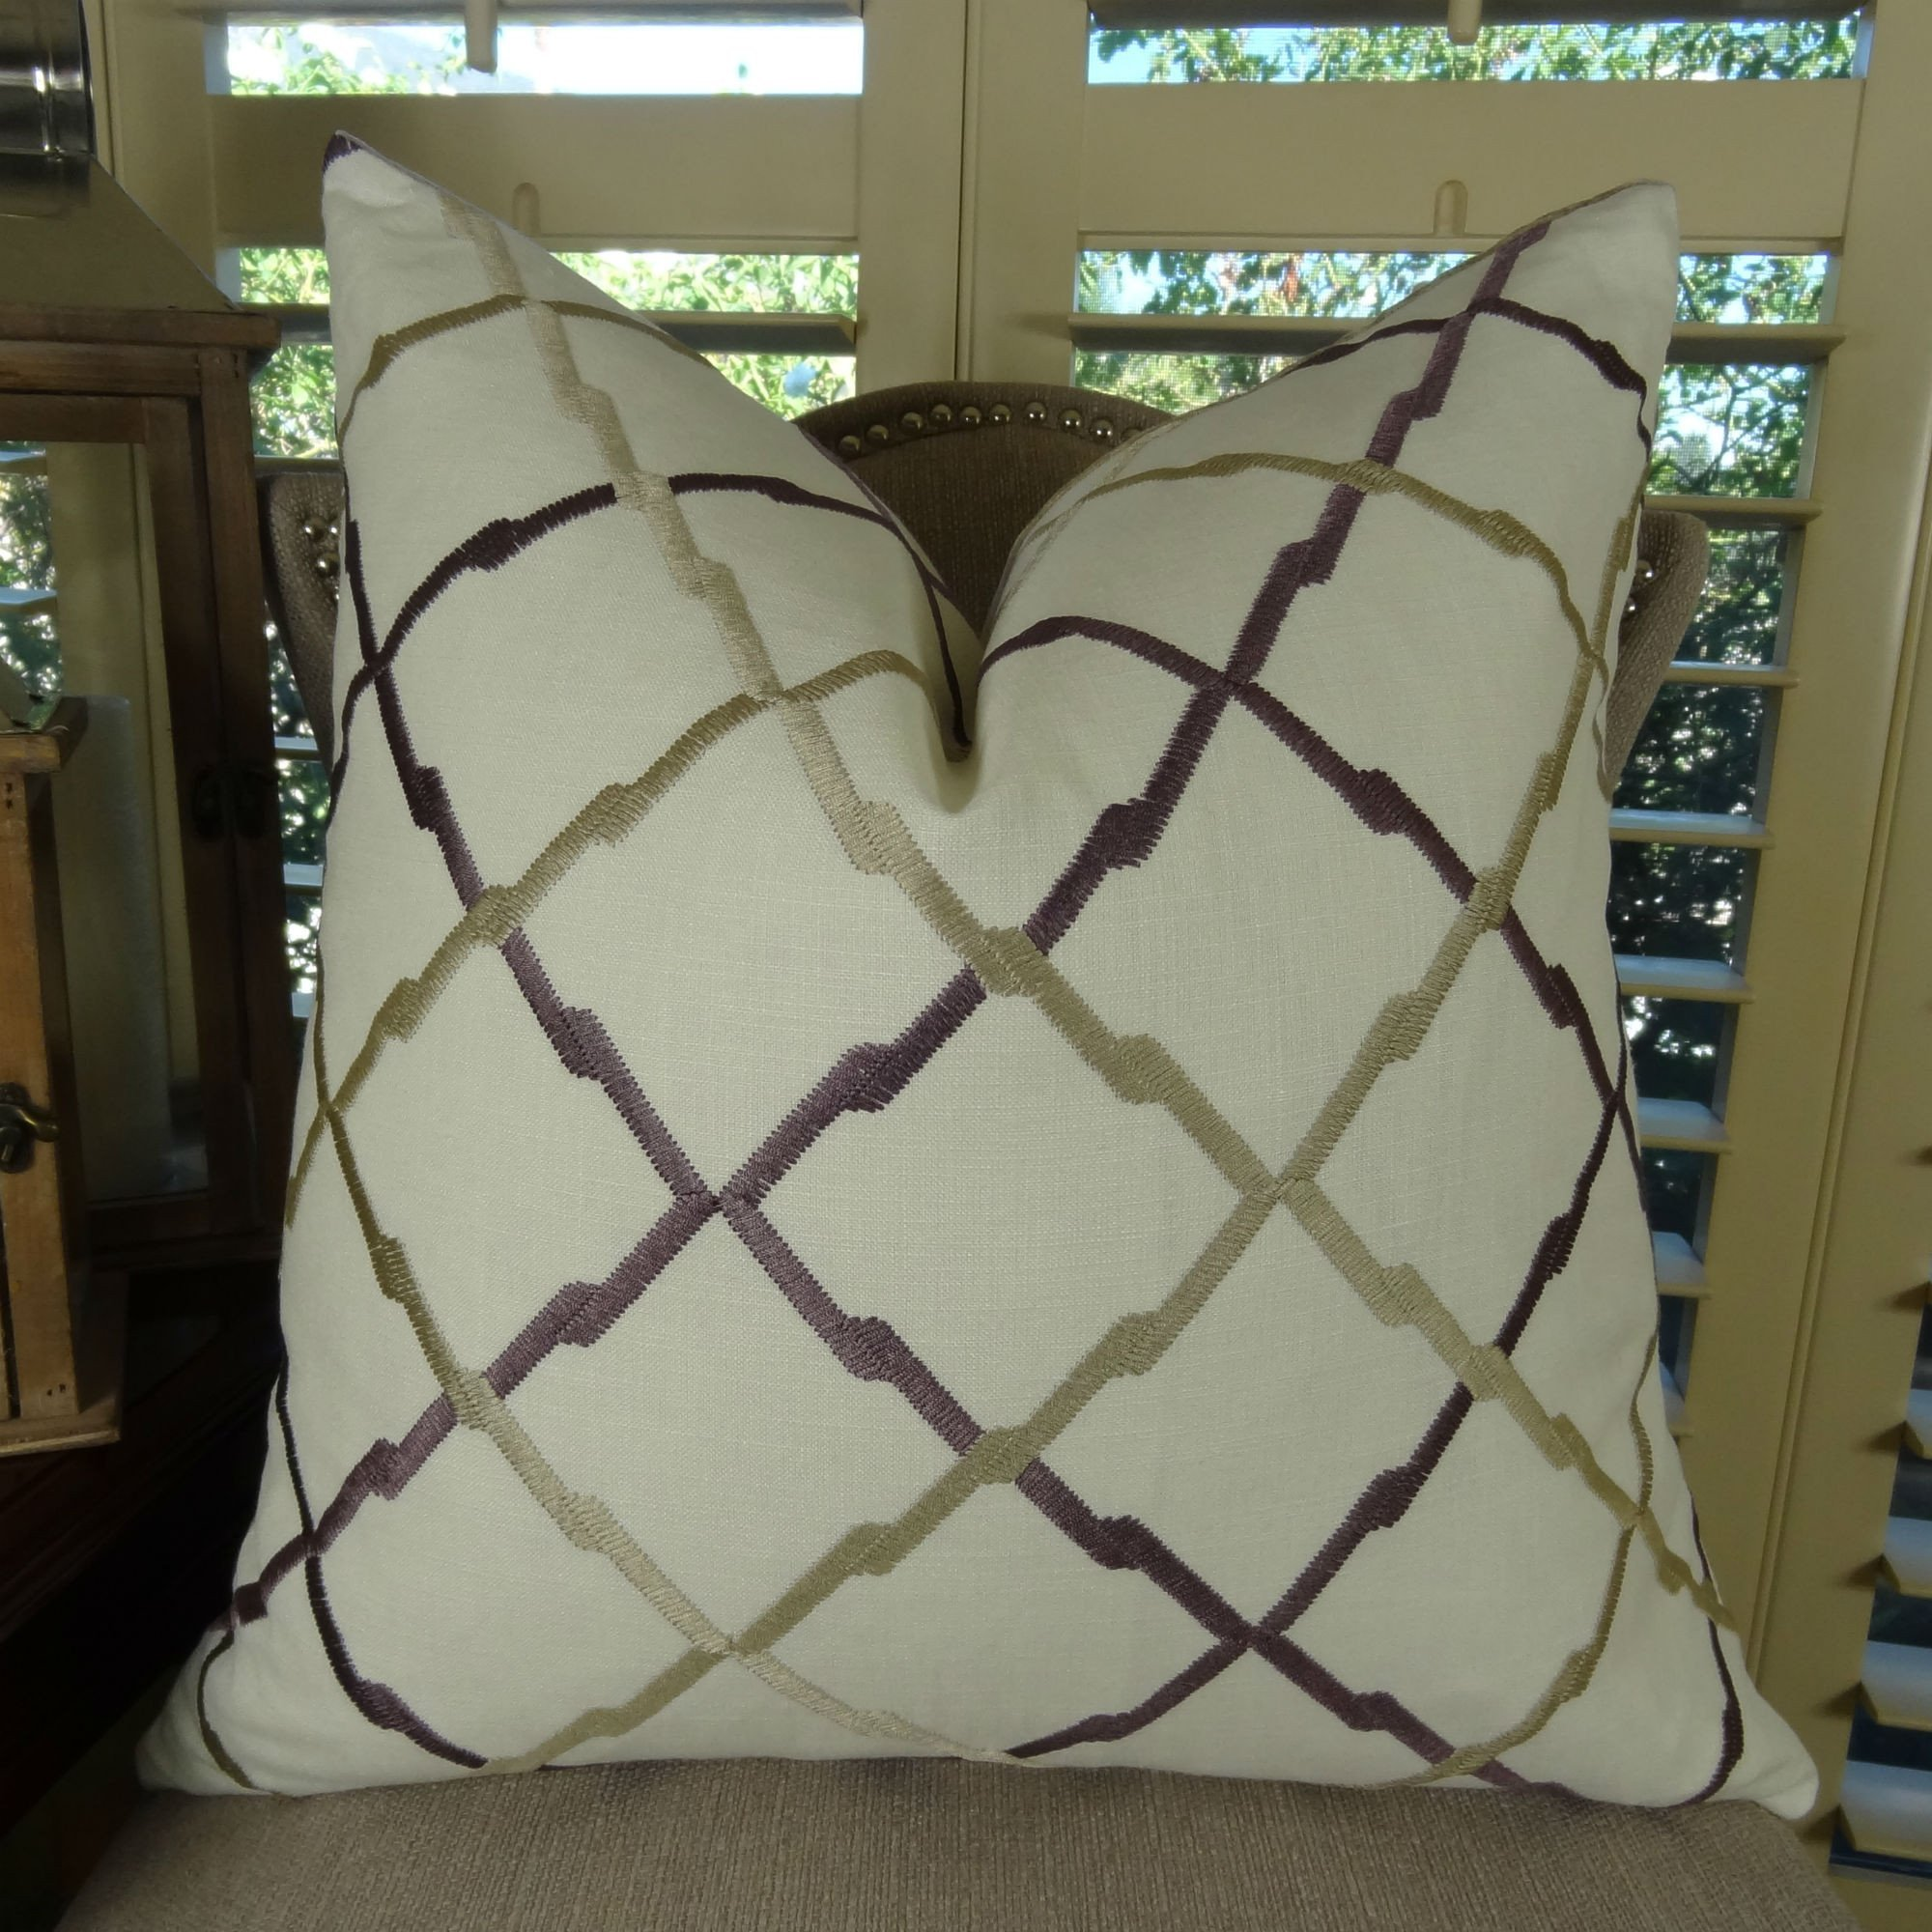 Thomas Collection Geometric Throw Pillow, White Tan Purple Diamond Decorative Throw Pillow, Modern Moroccan Pillow, Embroidered Linen Pillow, INCLUDES POLYFILL INSERT, Made in USA, 11180